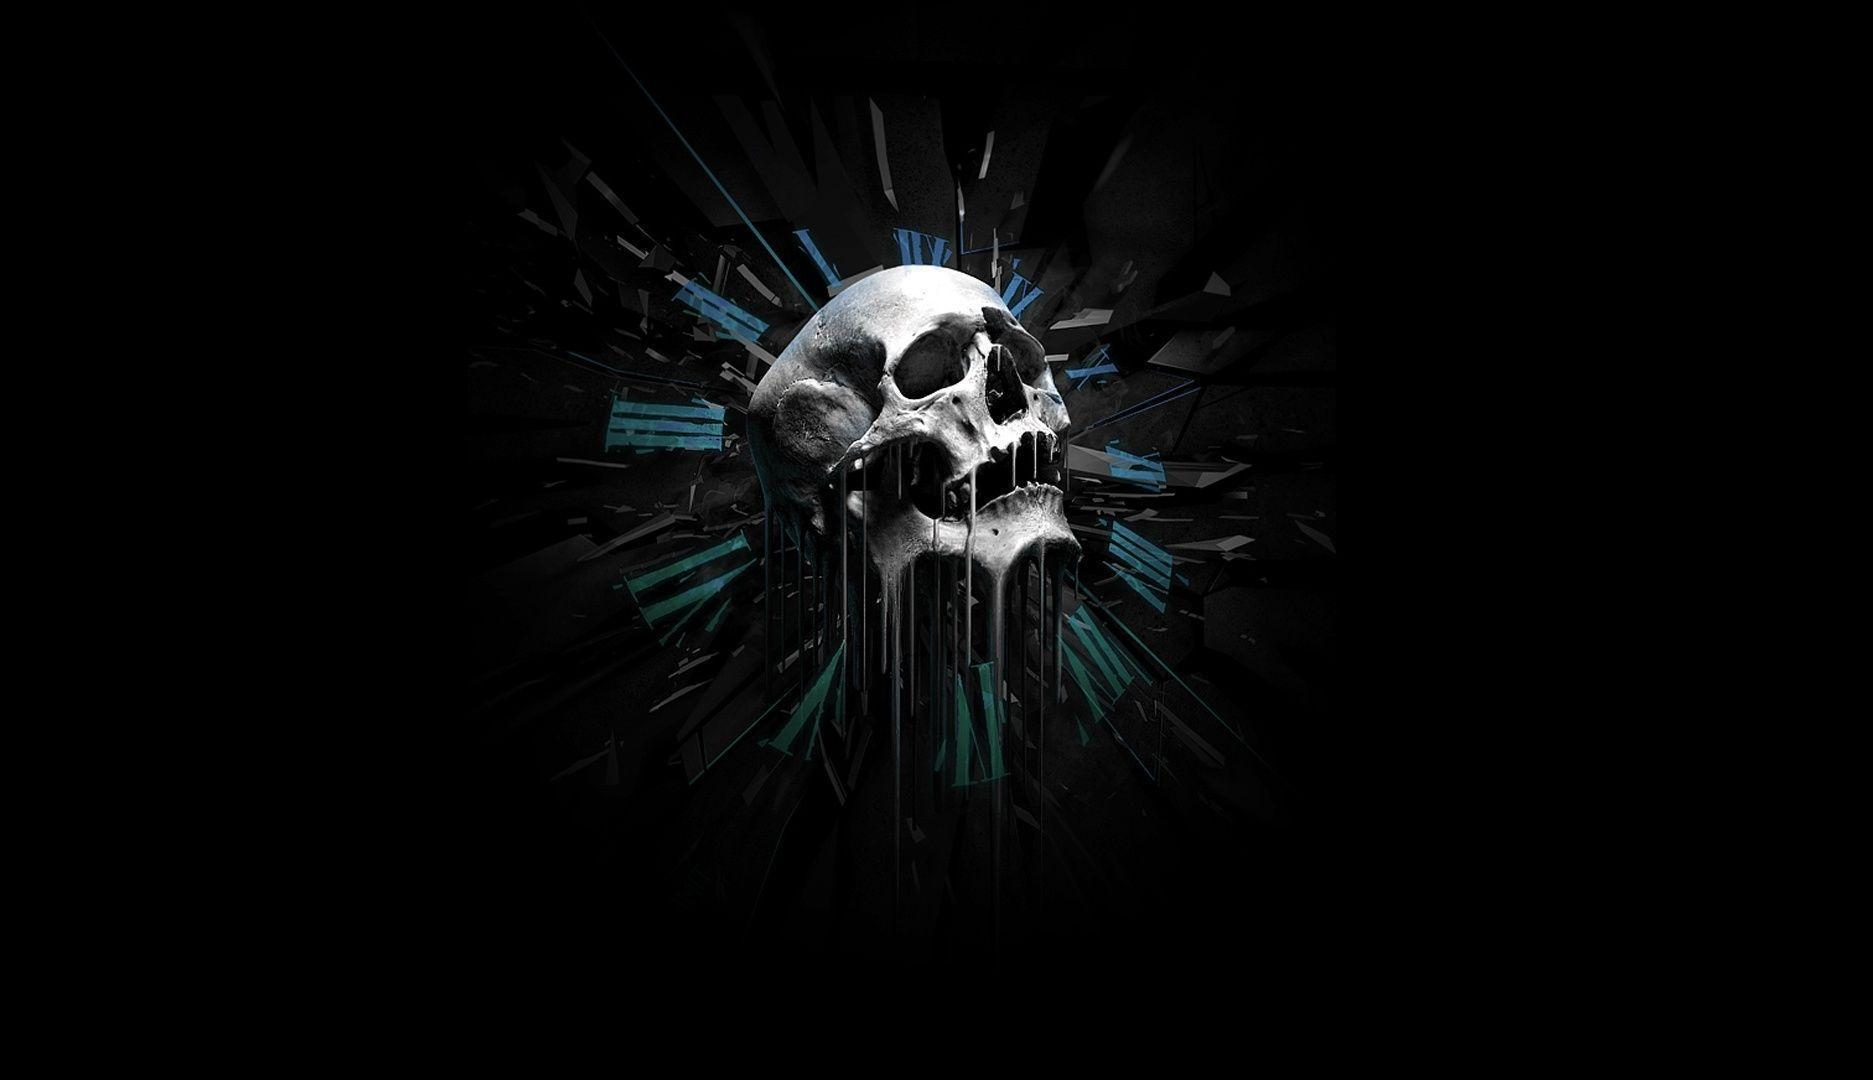 Free 3d skull wallpapers wallpaper cave for Black 3d wallpaper